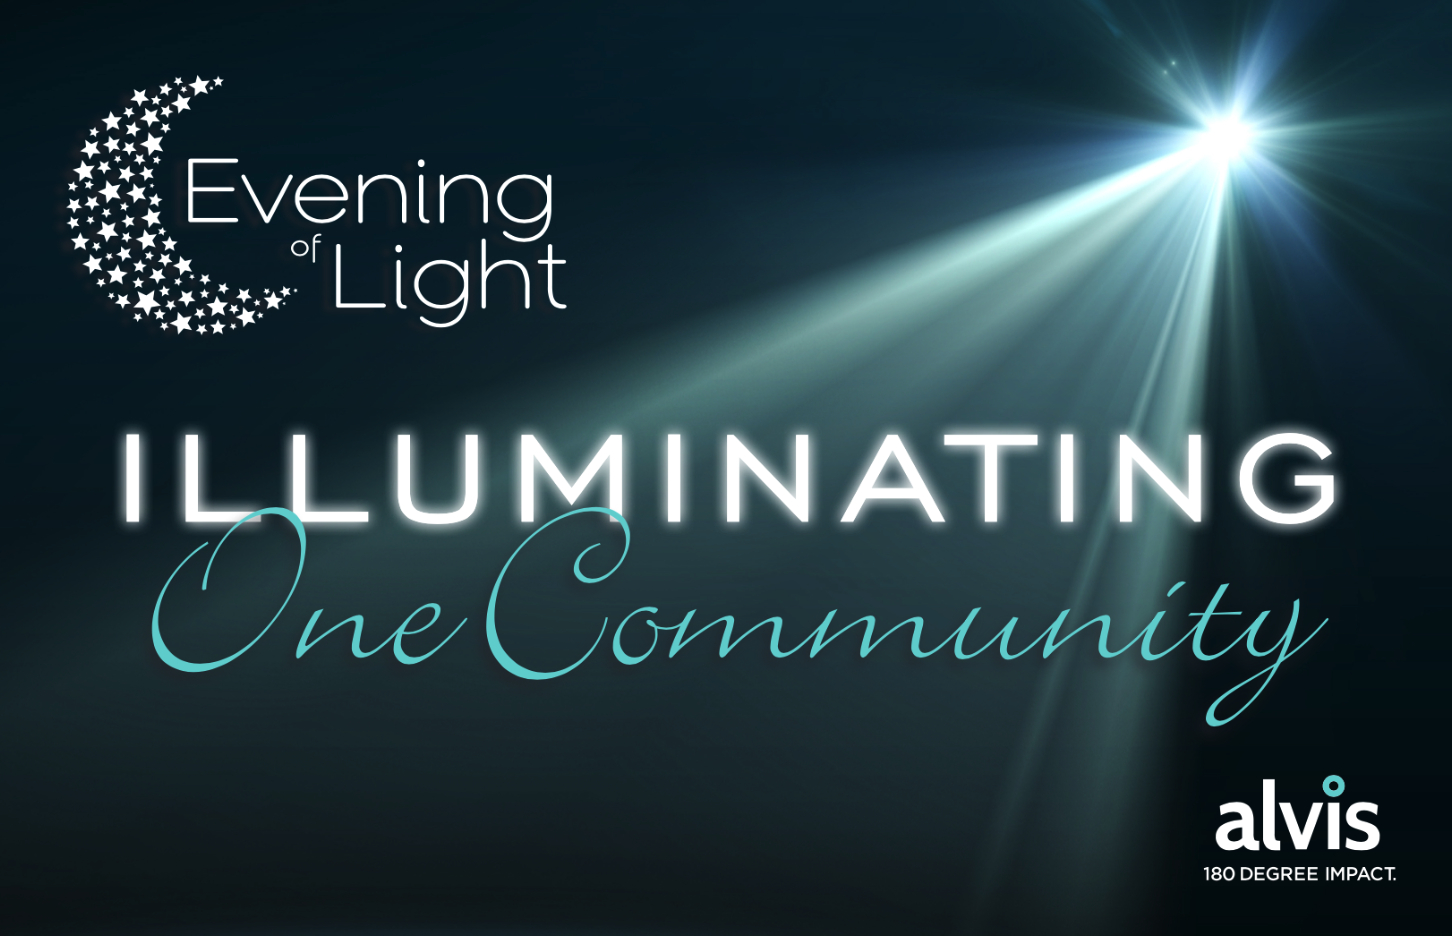 Evening Of Light Is 3 Months Away. Please Mark Your throughout Please Mark Your Calendar For